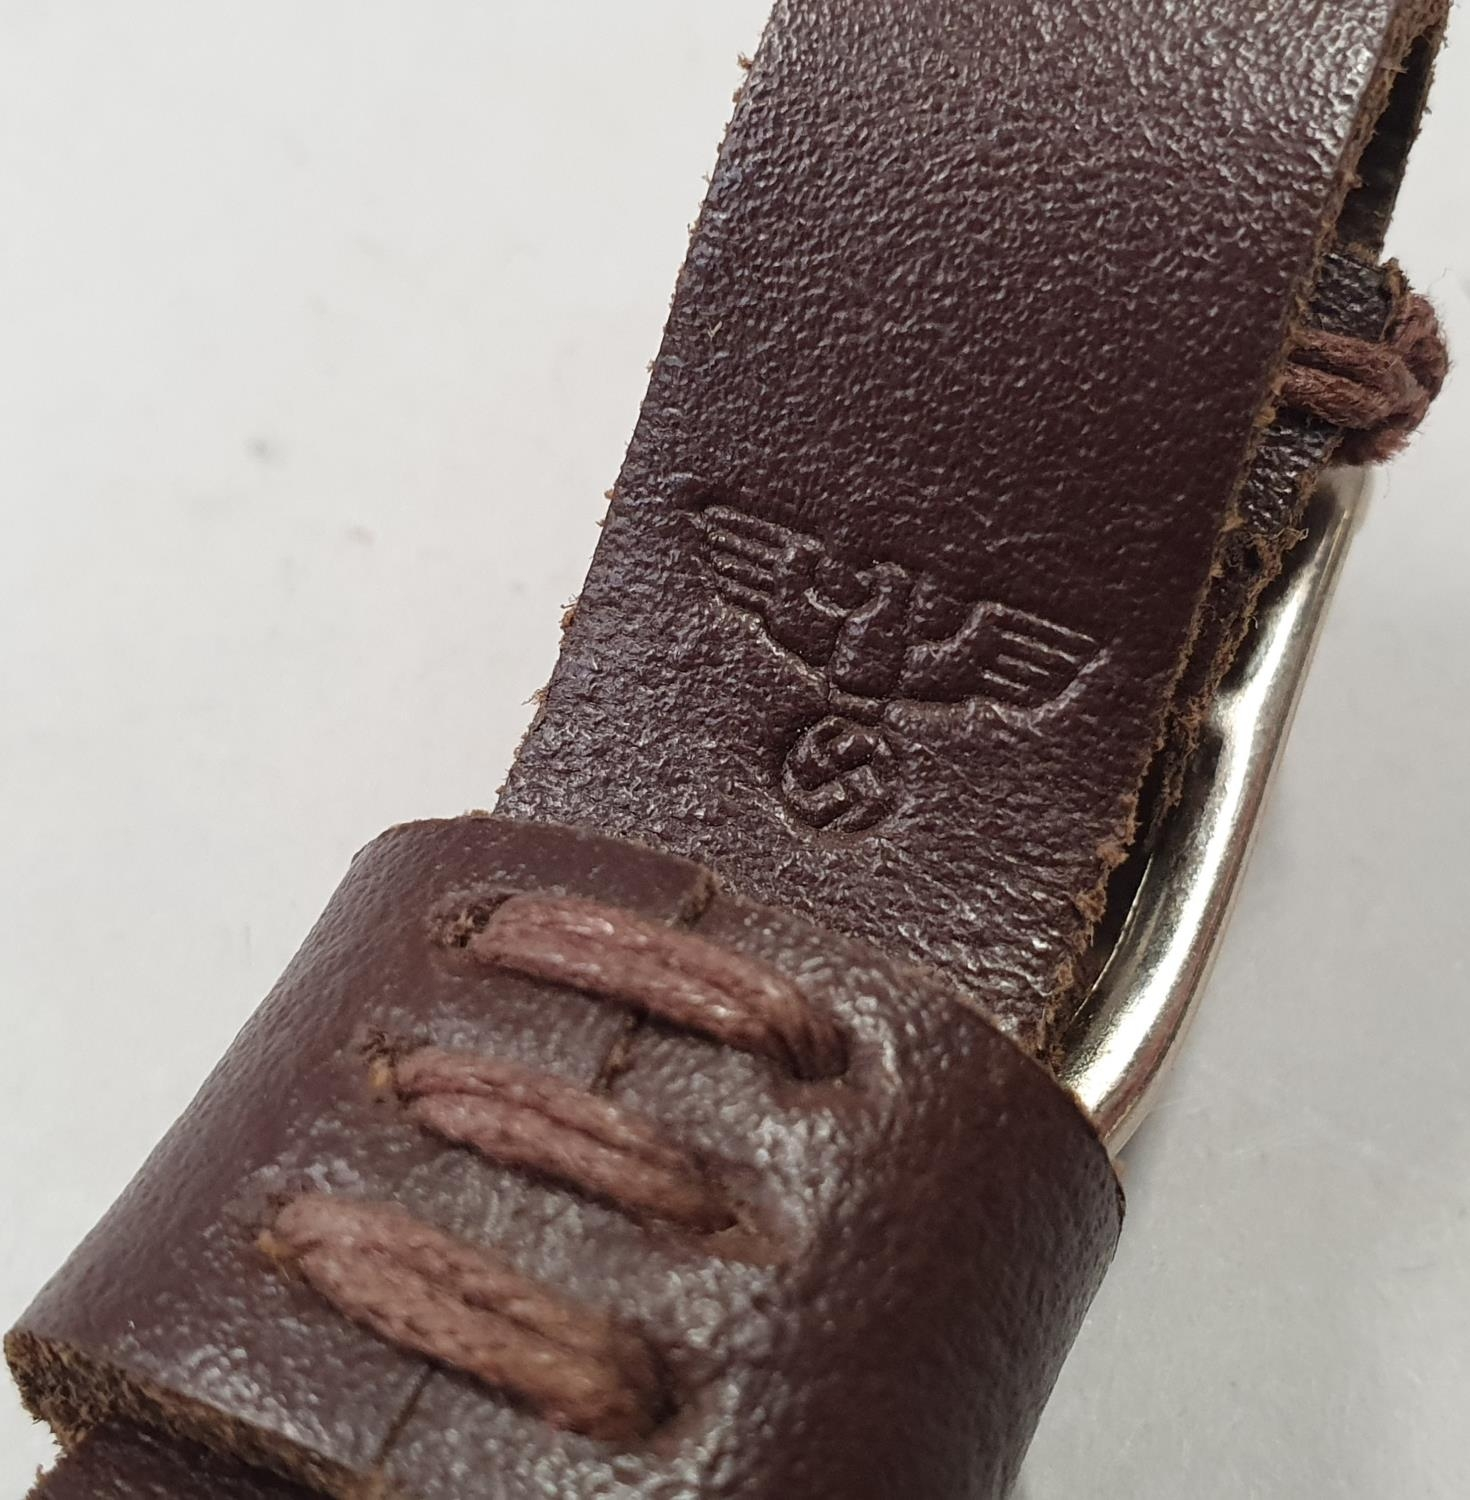 Nazi Third Reich wood handle dagger with emblem and engraving to blade - Image 7 of 9